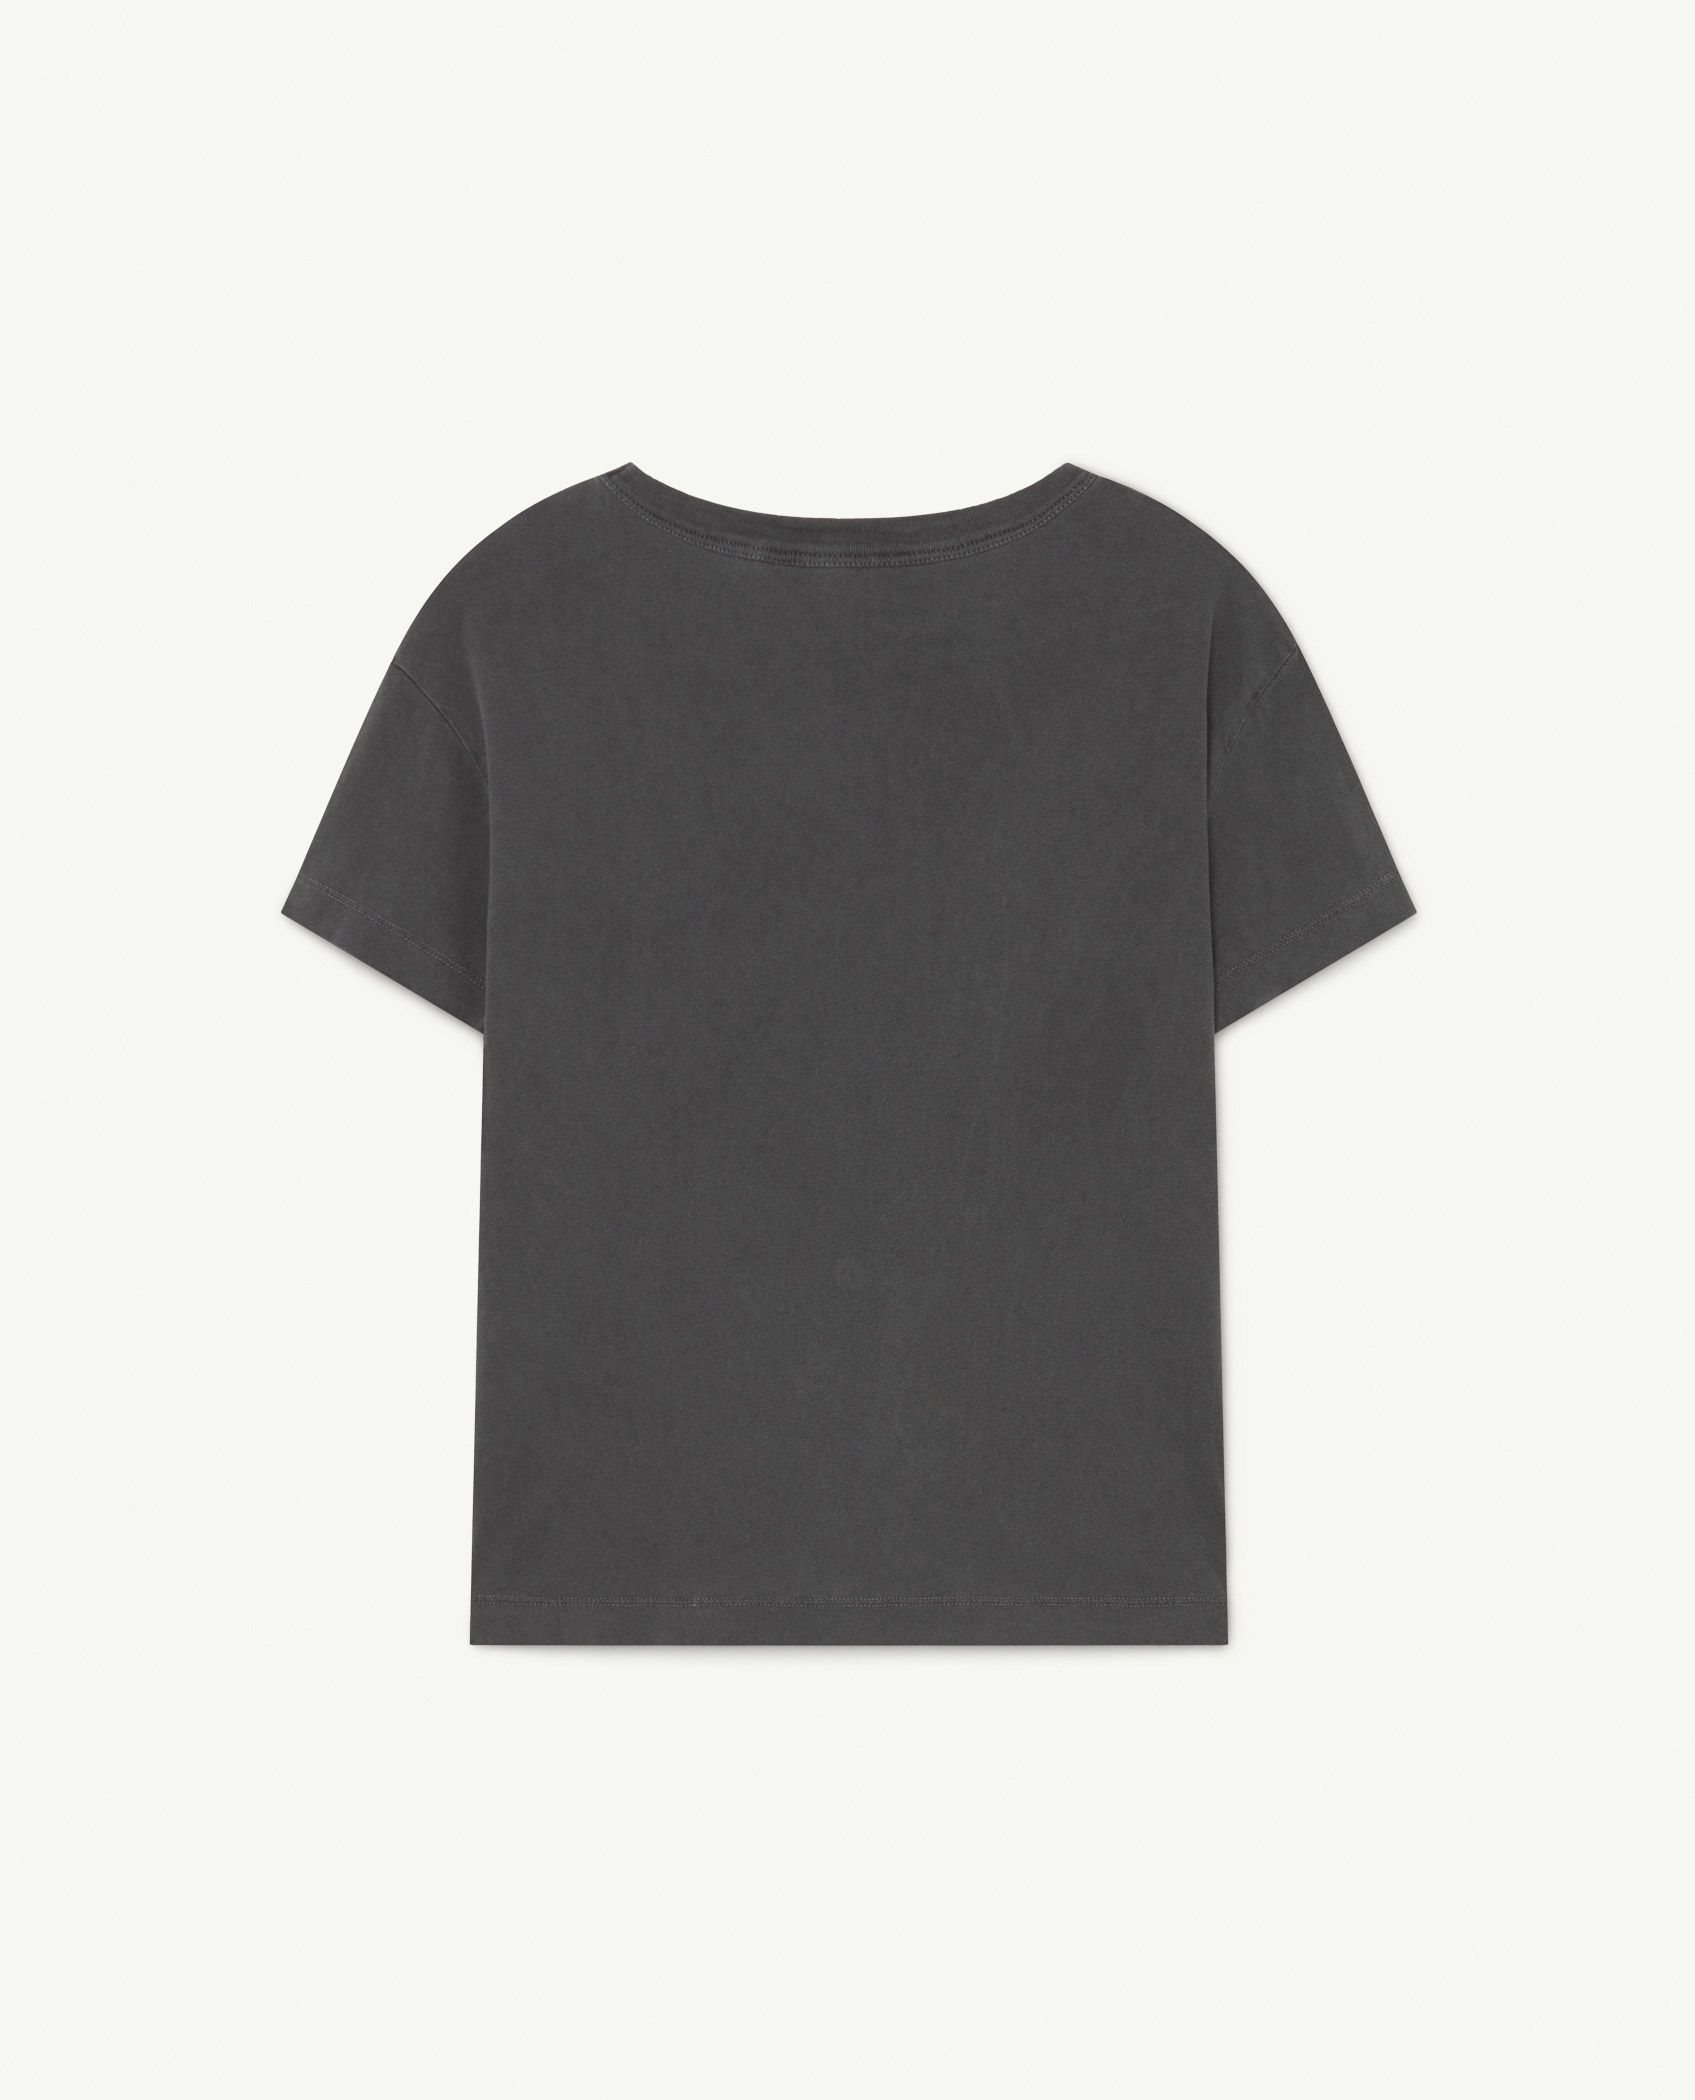 Soft Black Rooster T-Shirt img-2